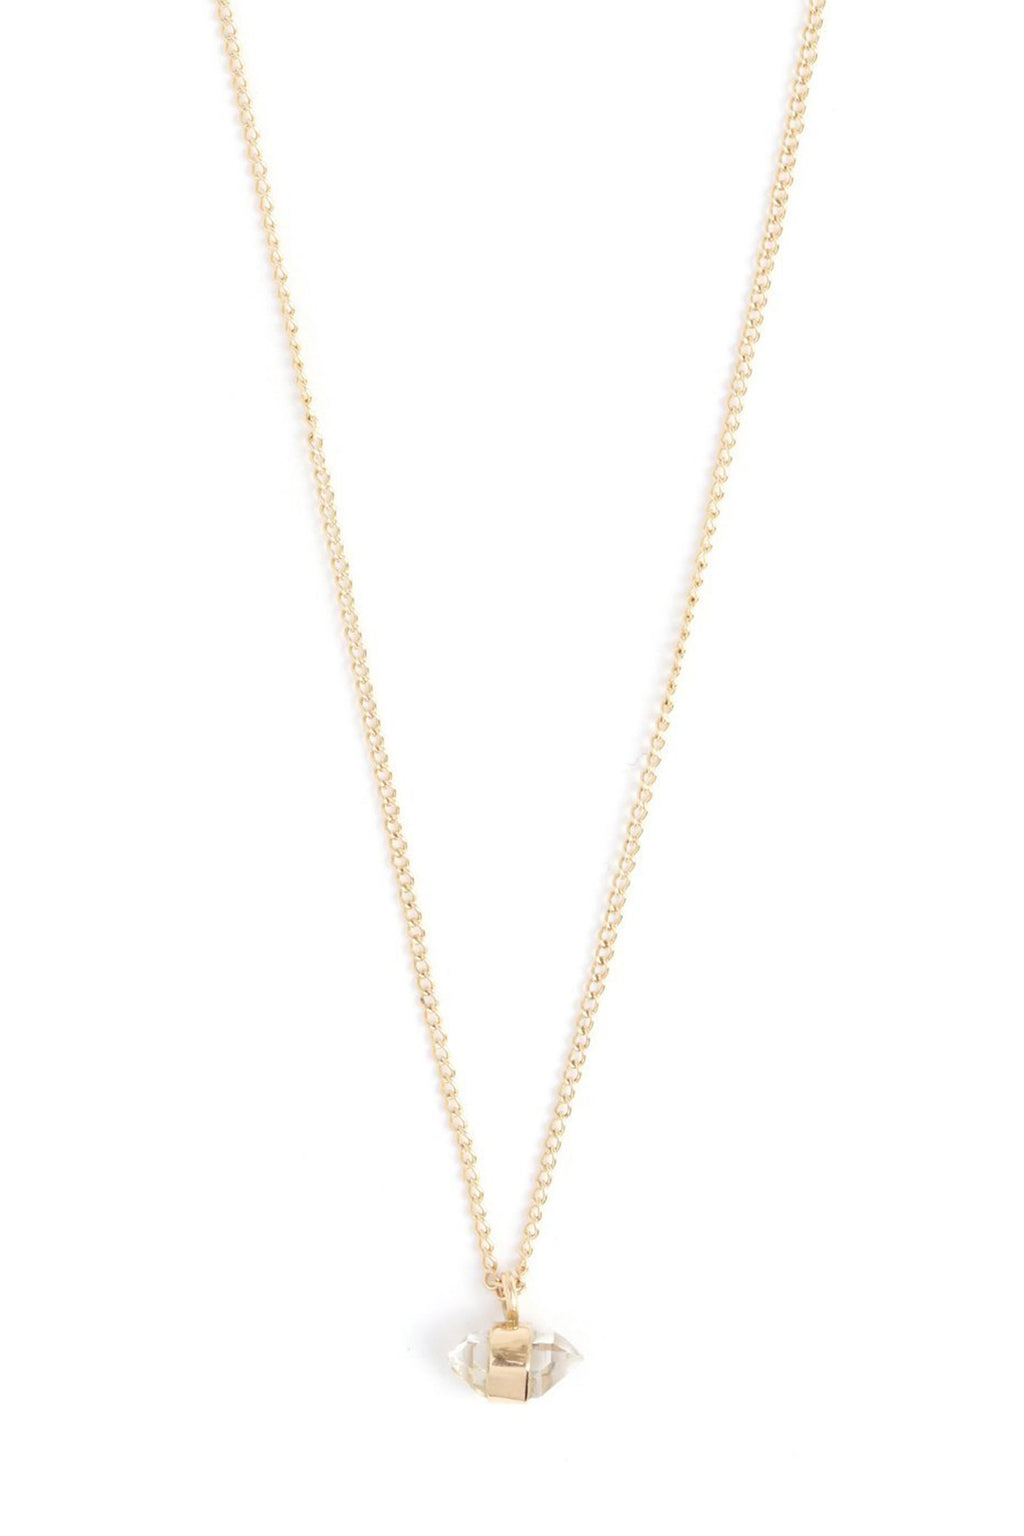 Melissa Joy Manning 14K Yellow Gold Herkimer Diamond Necklace